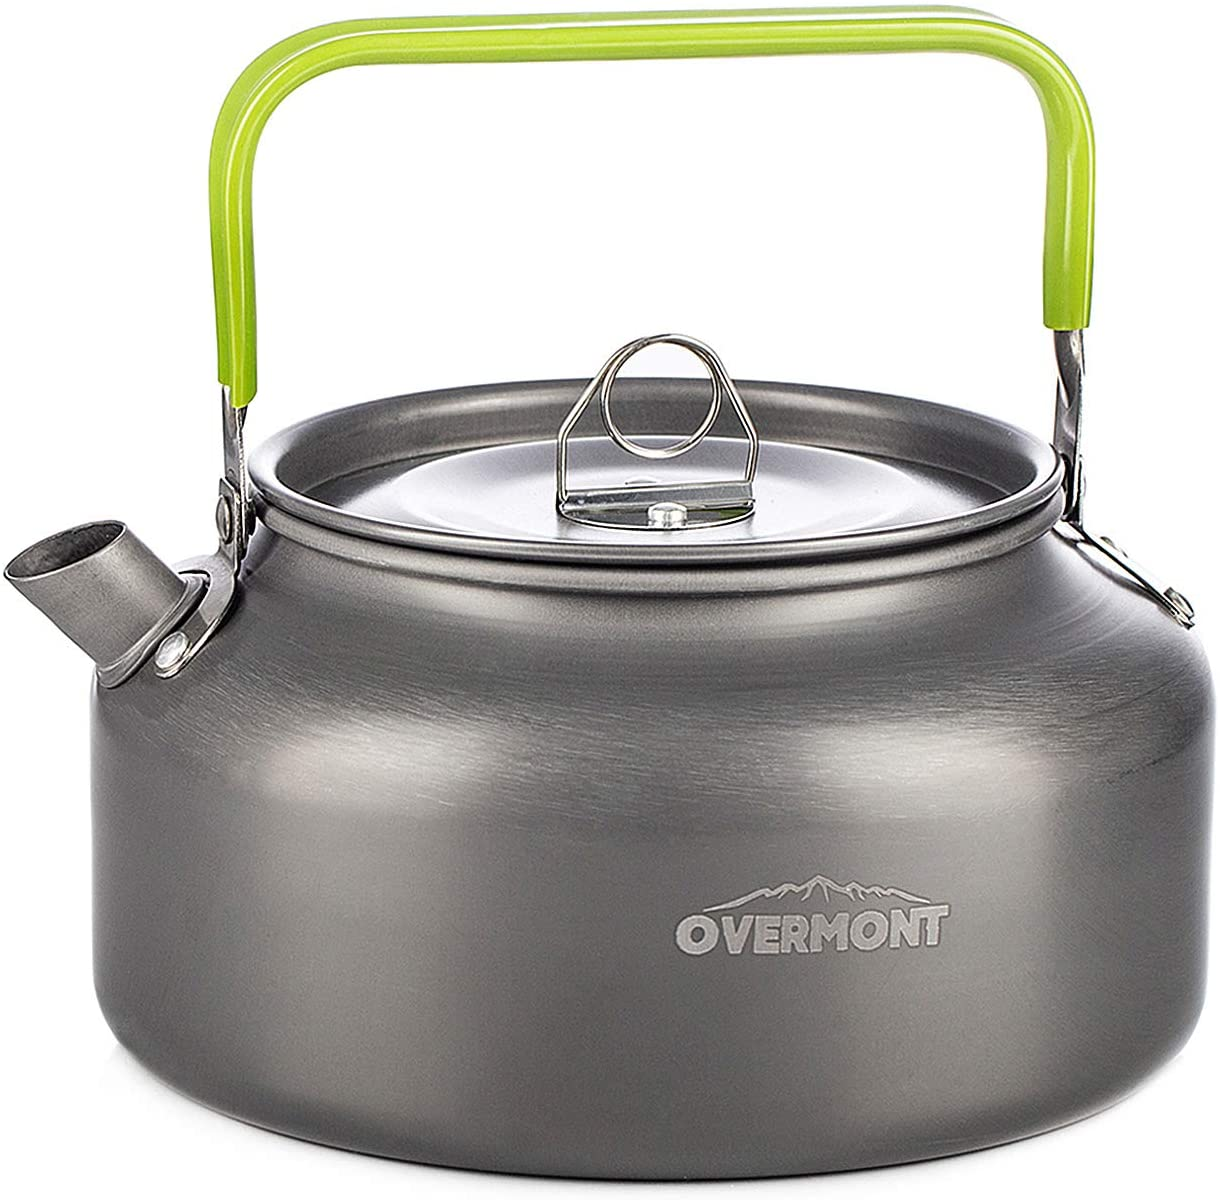 Overmont Camping Aluminum Tea Coffee Kettle